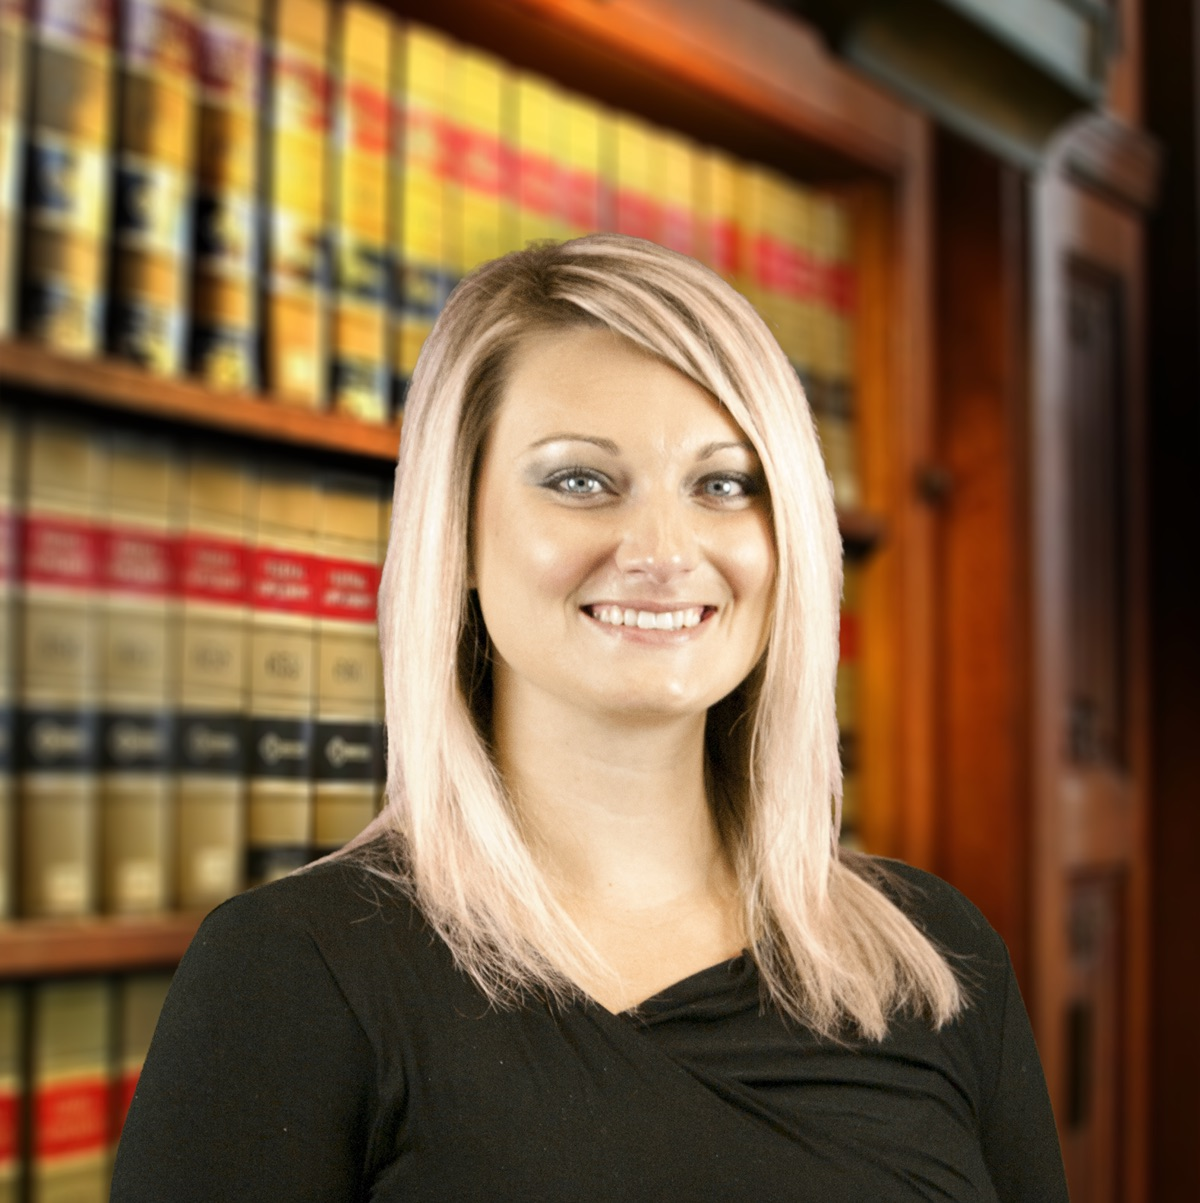 St Cloud Attorneys Staff at Jeddeloh Snyder PA - Ashley Smith